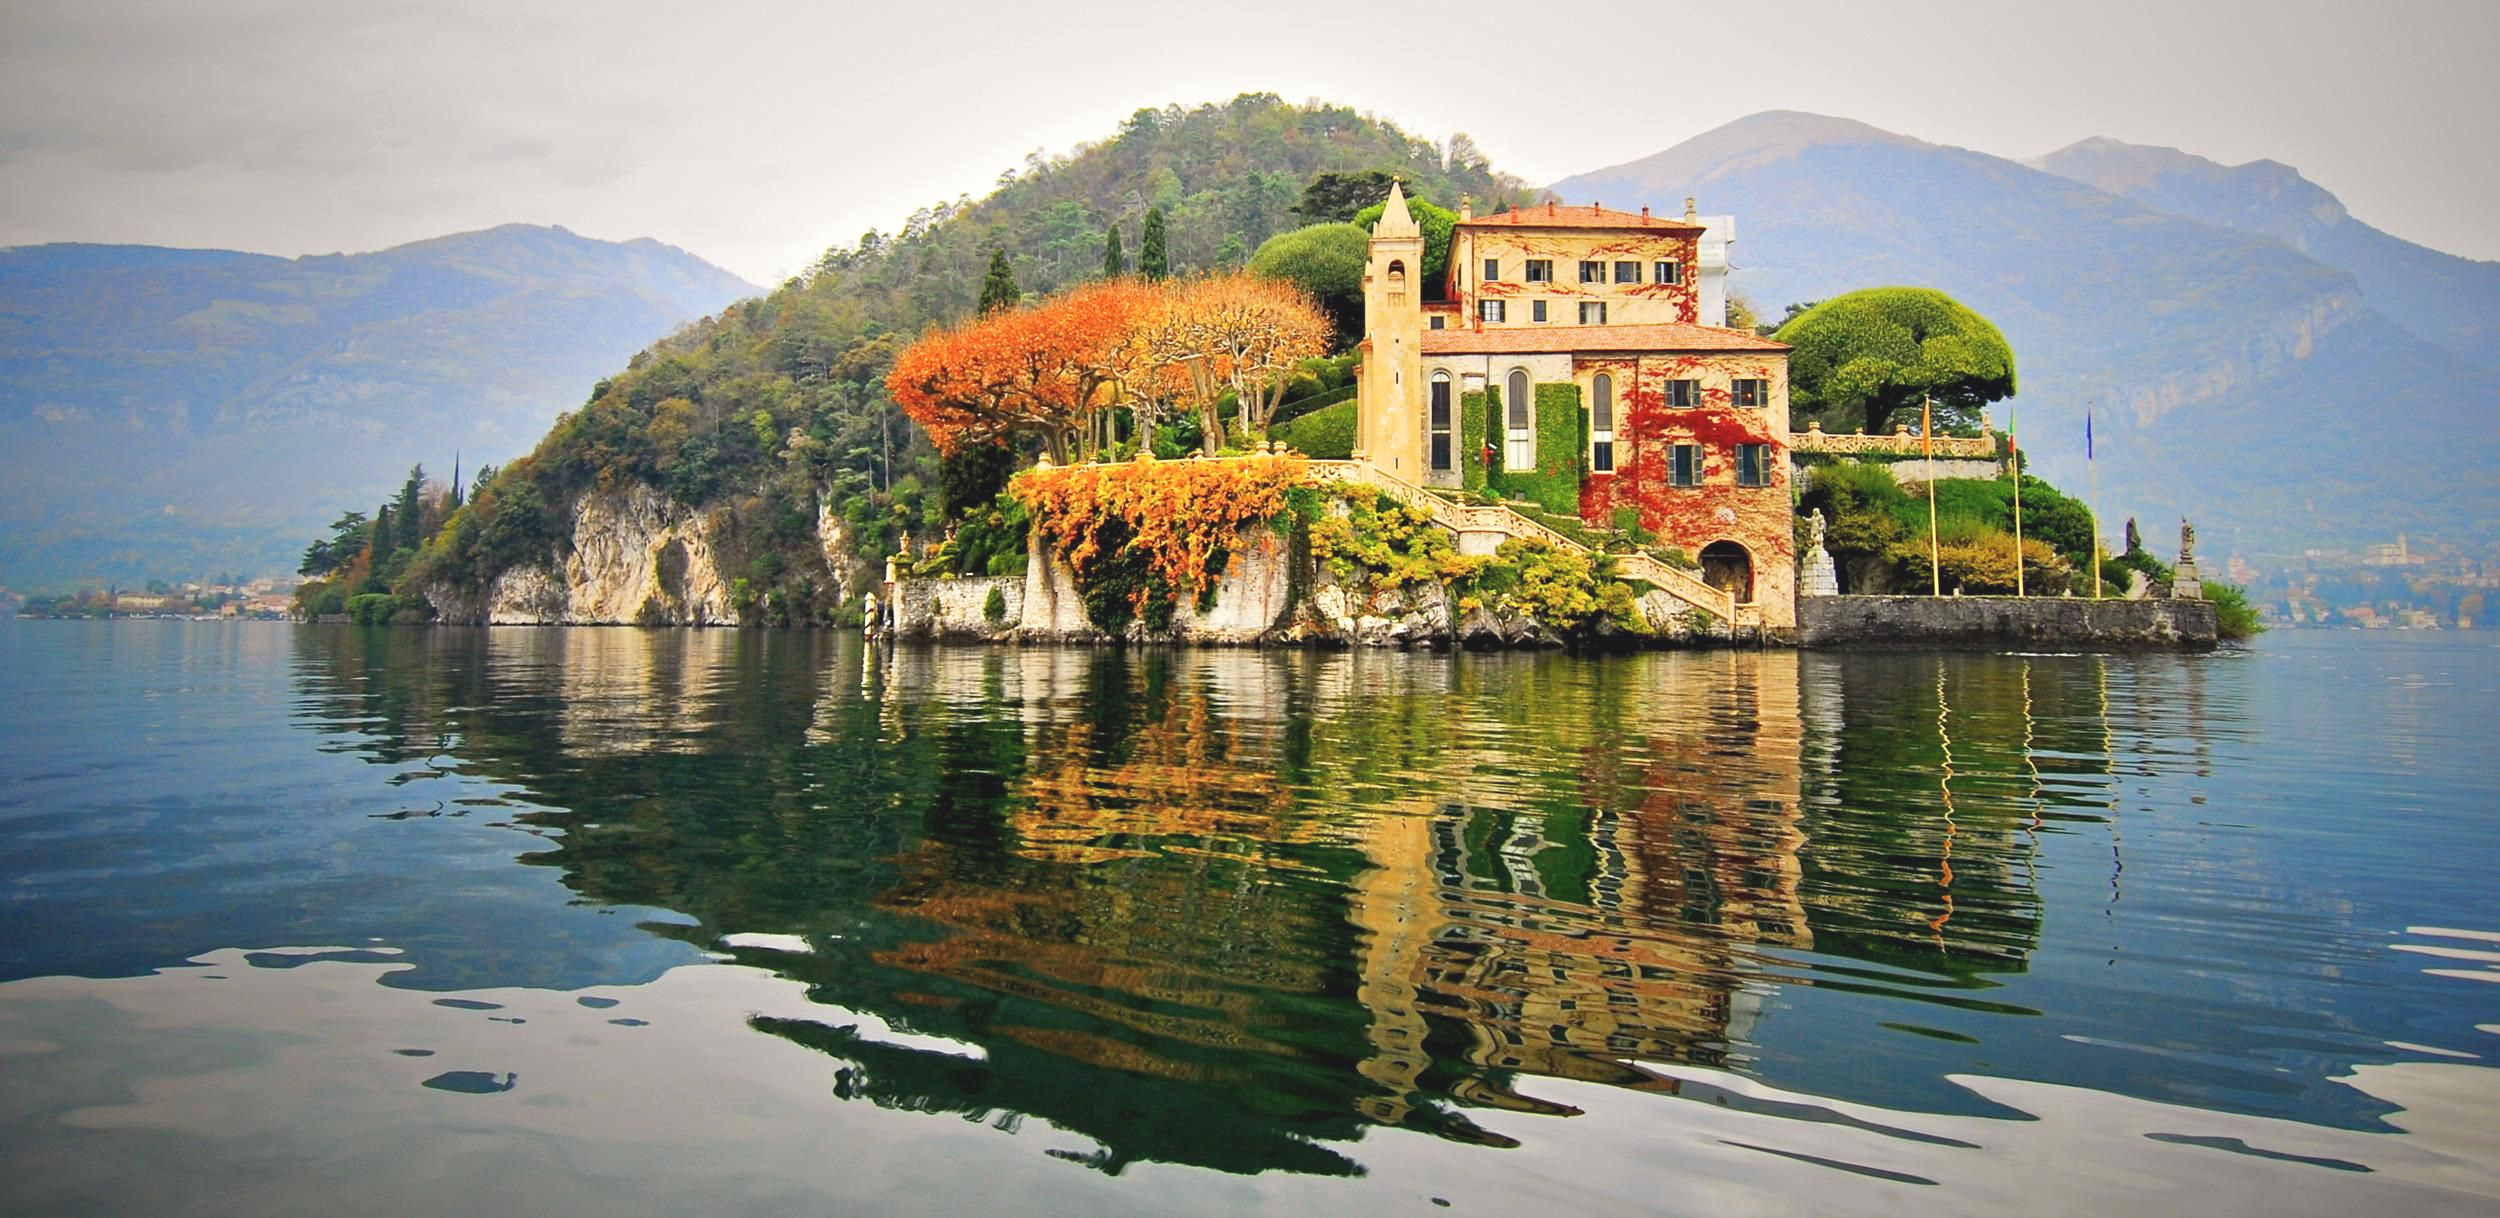 DHL and Intech Automazione – success stories on Lake Como